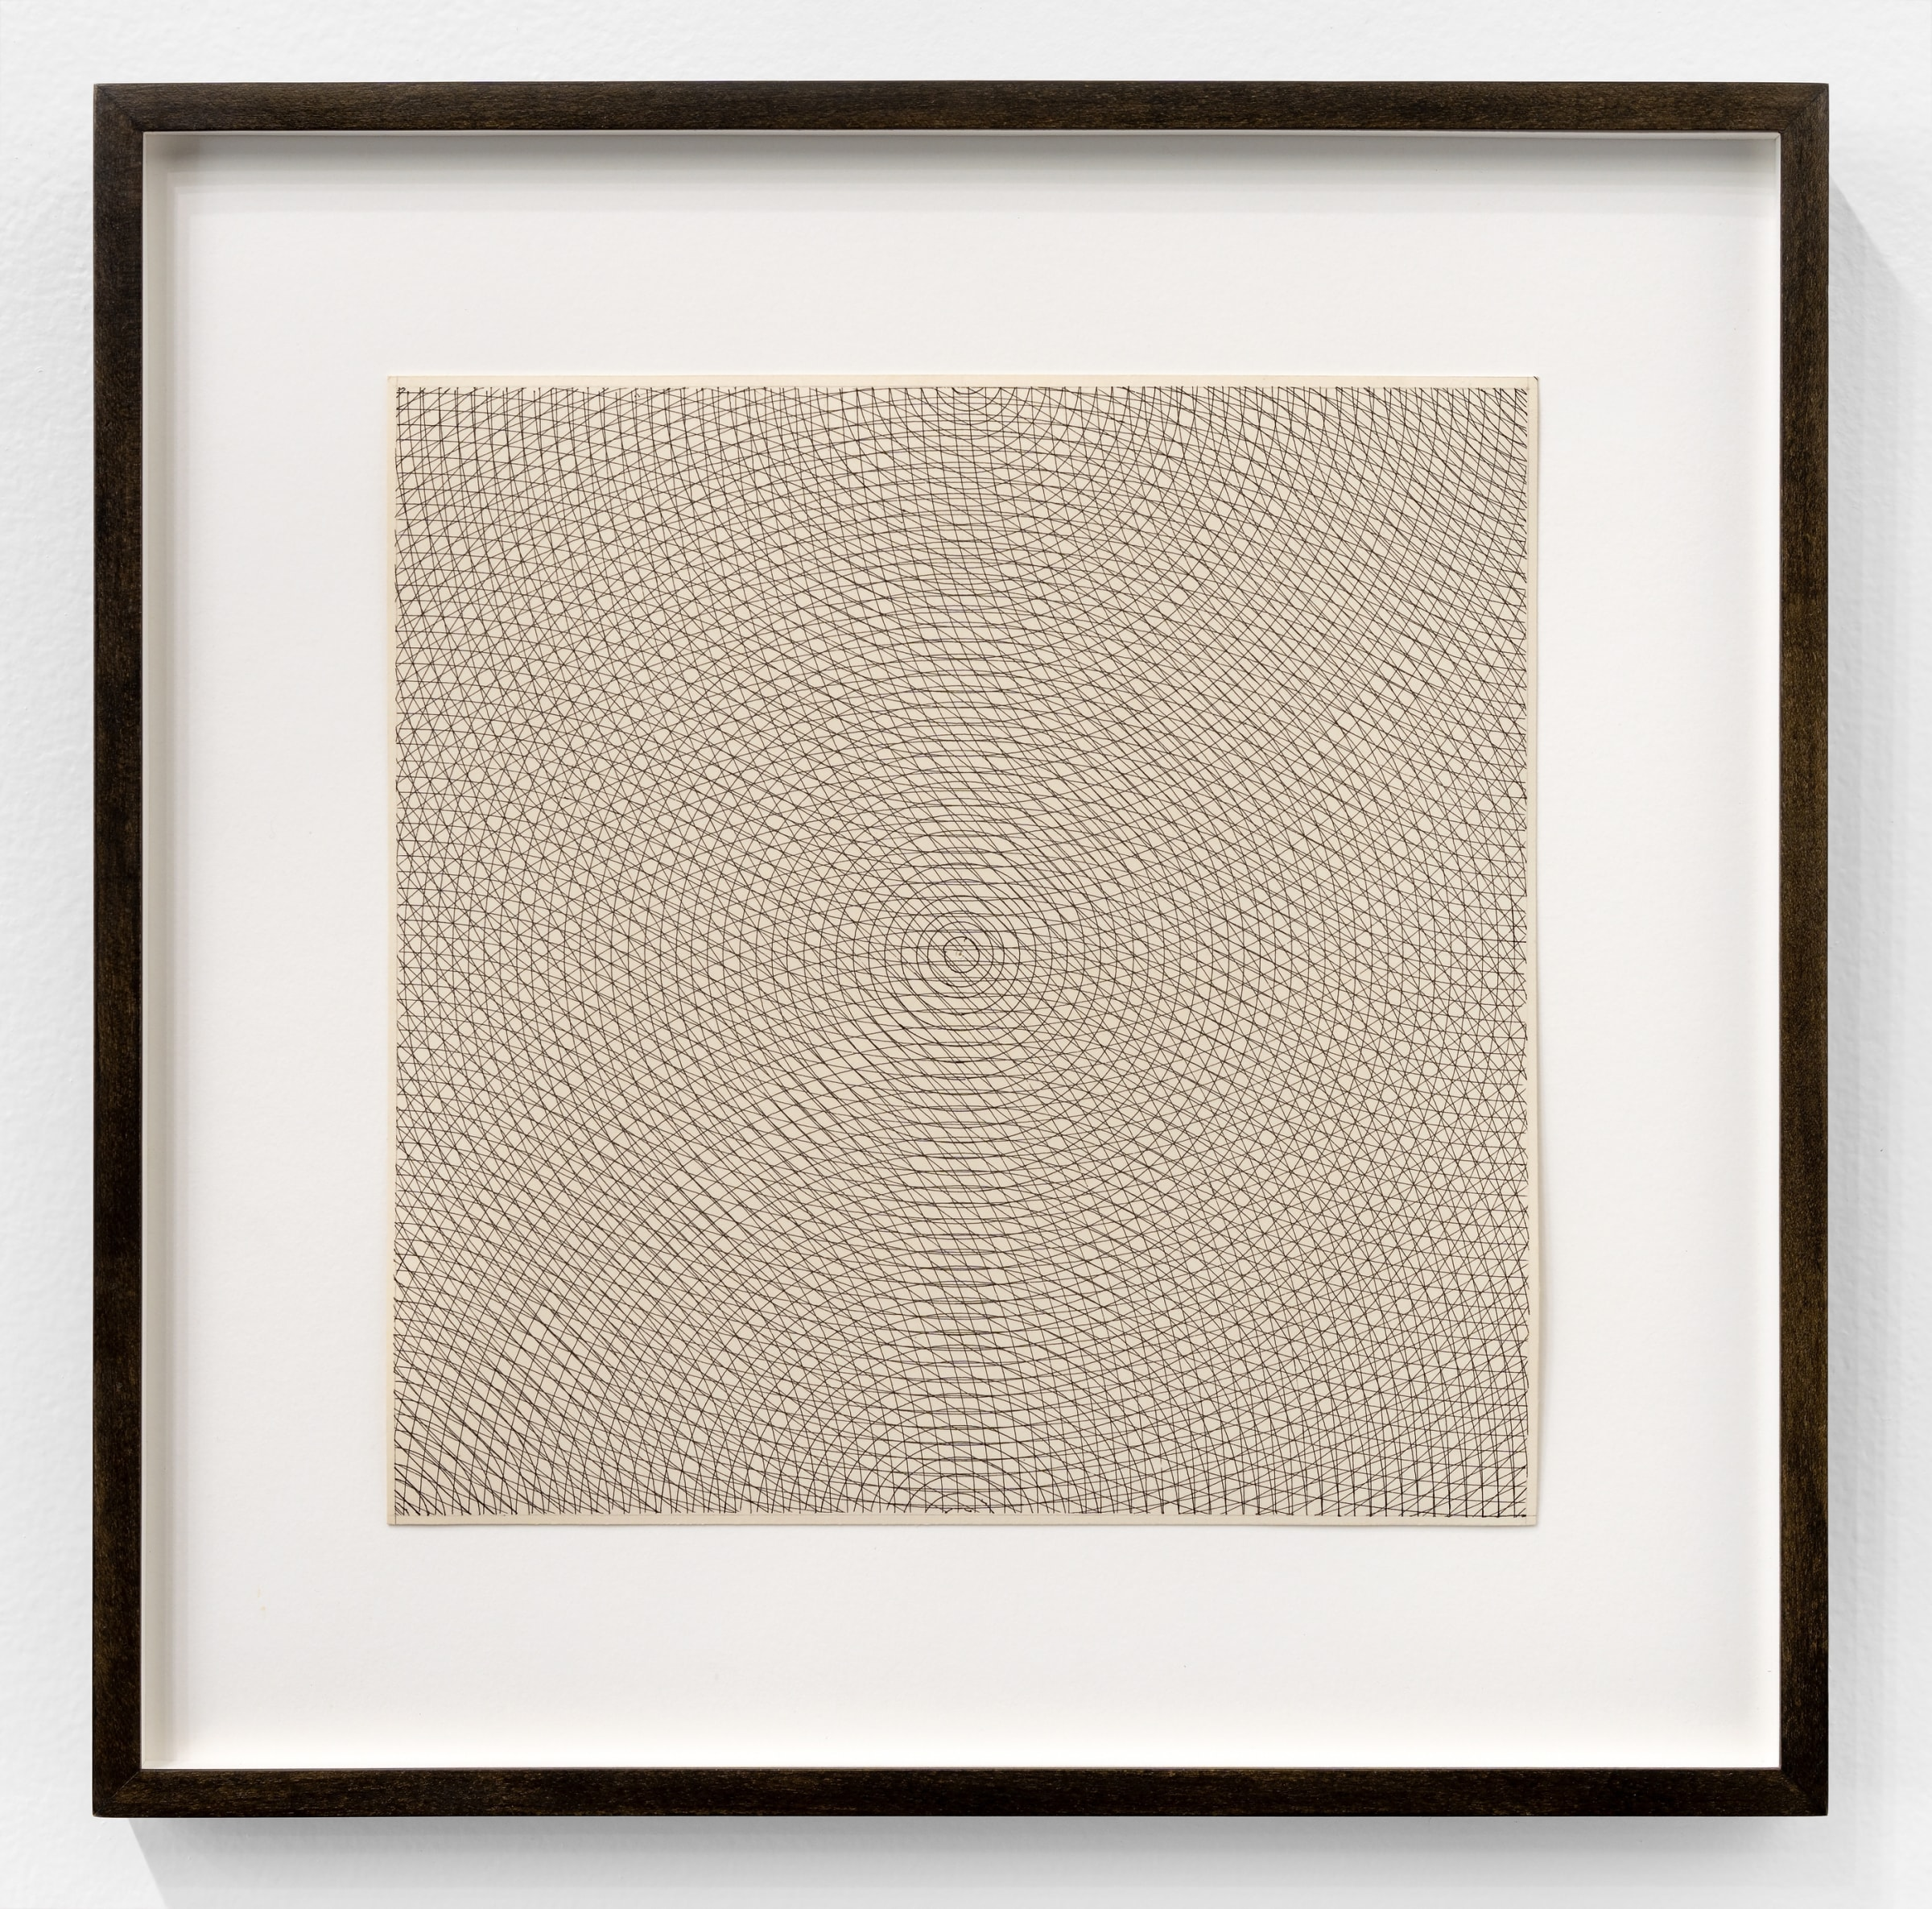 Sol Lewitt, Circles, Arcs from Opposite Corners and Opposite Sides, 1971 | The Bonnier Gallery